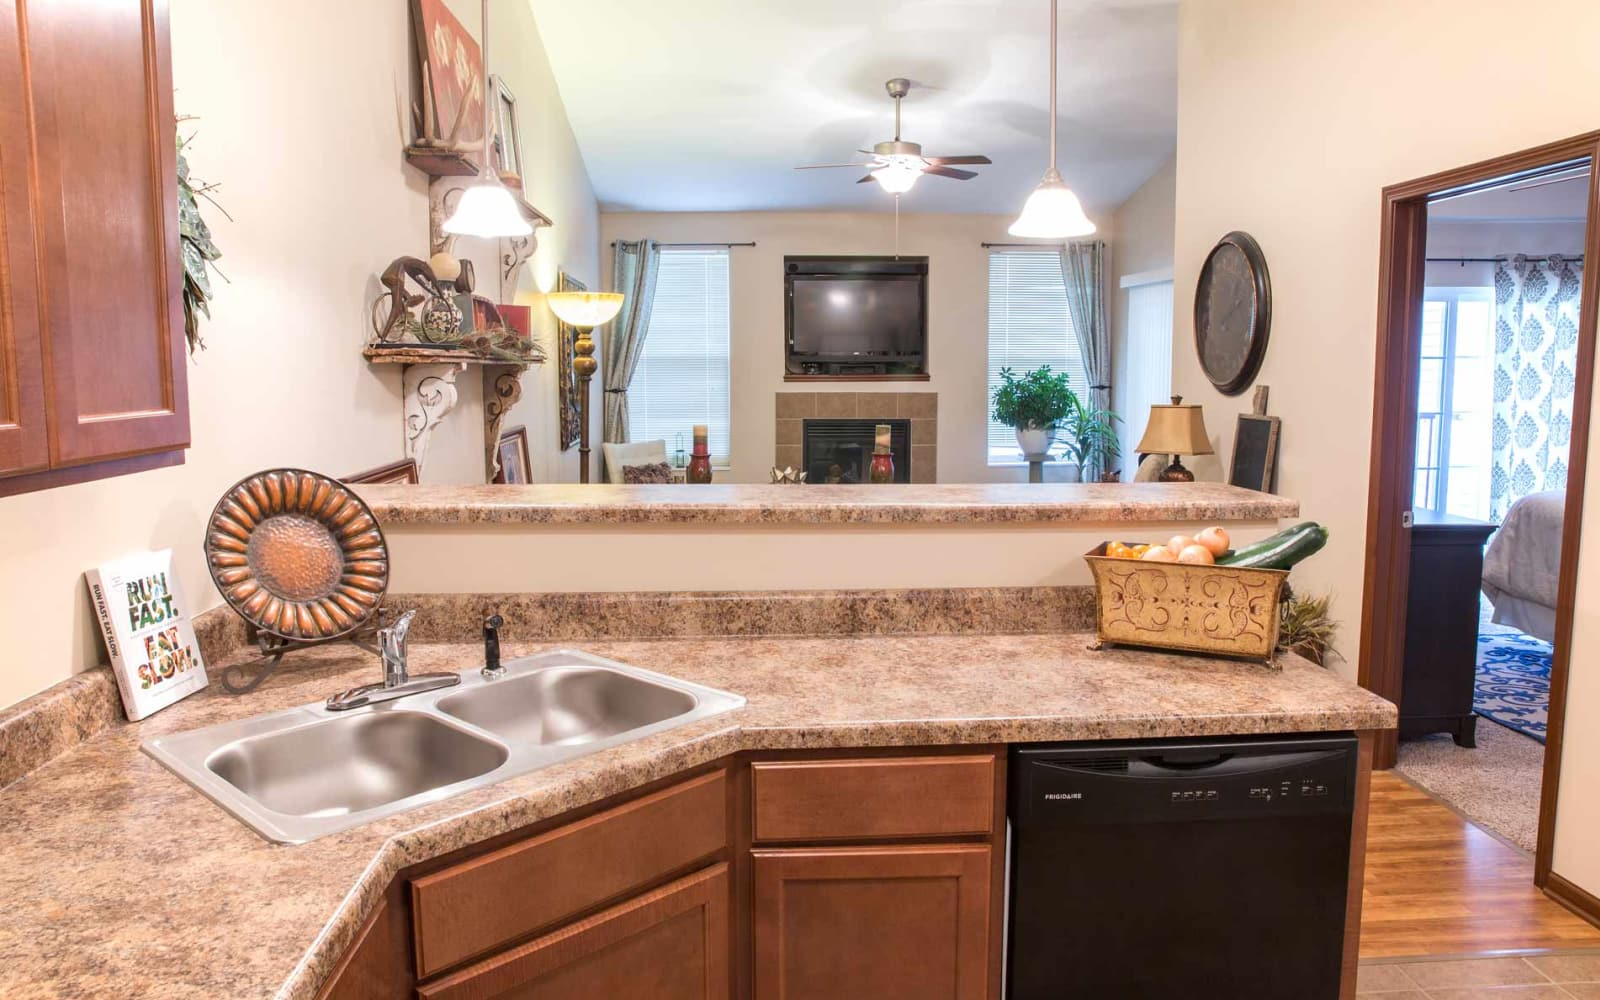 Kitchen facing the living room at Woodland Reserve in Ankeny, Iowa